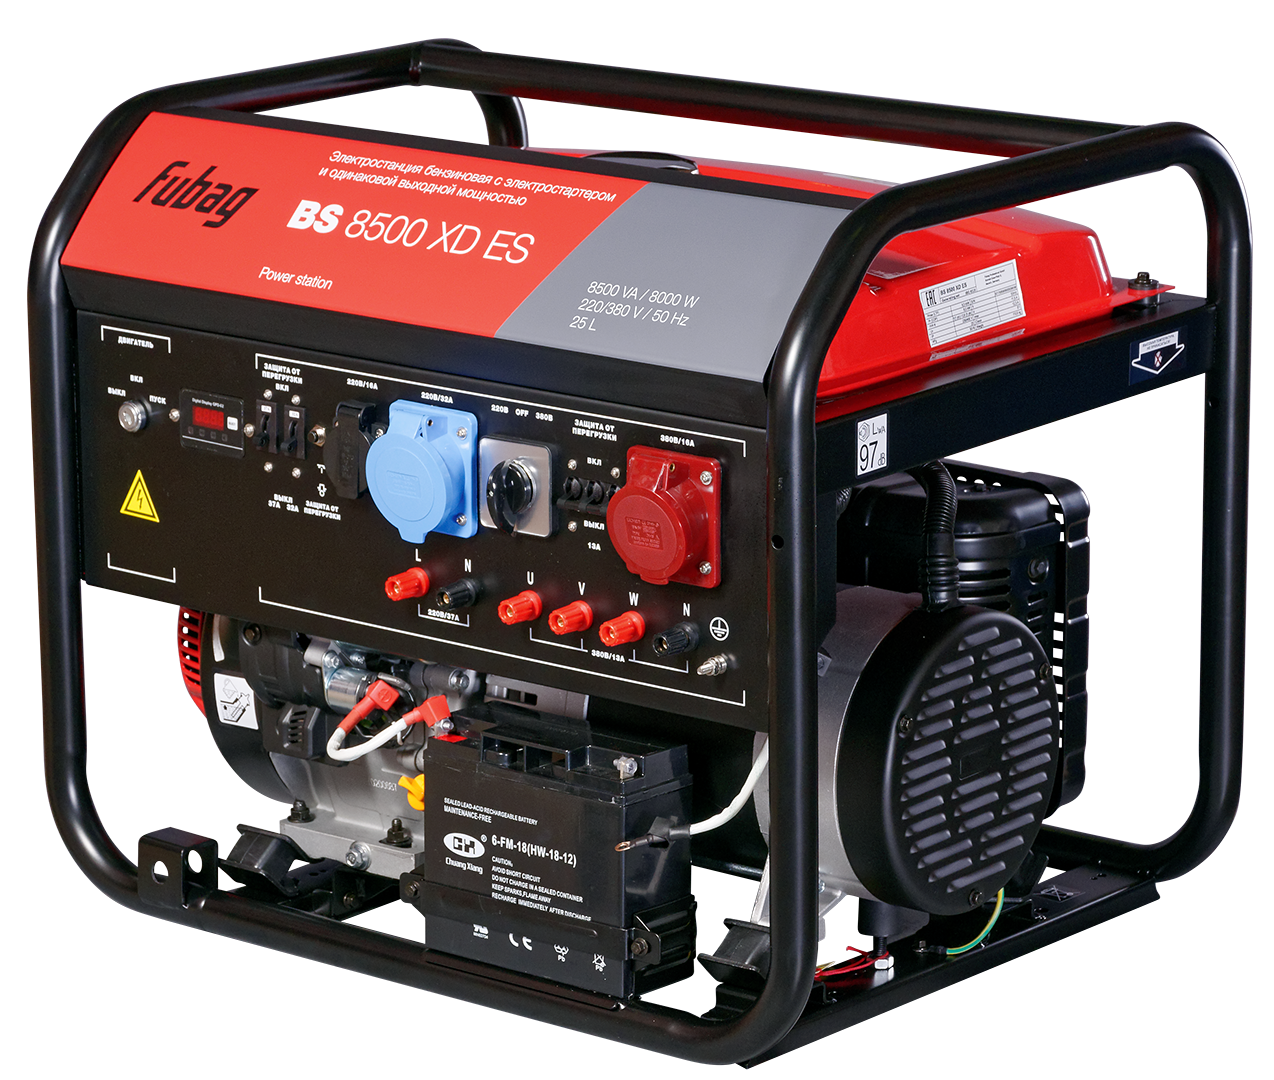 Generator png image purepng. Electric clipart electricity generation